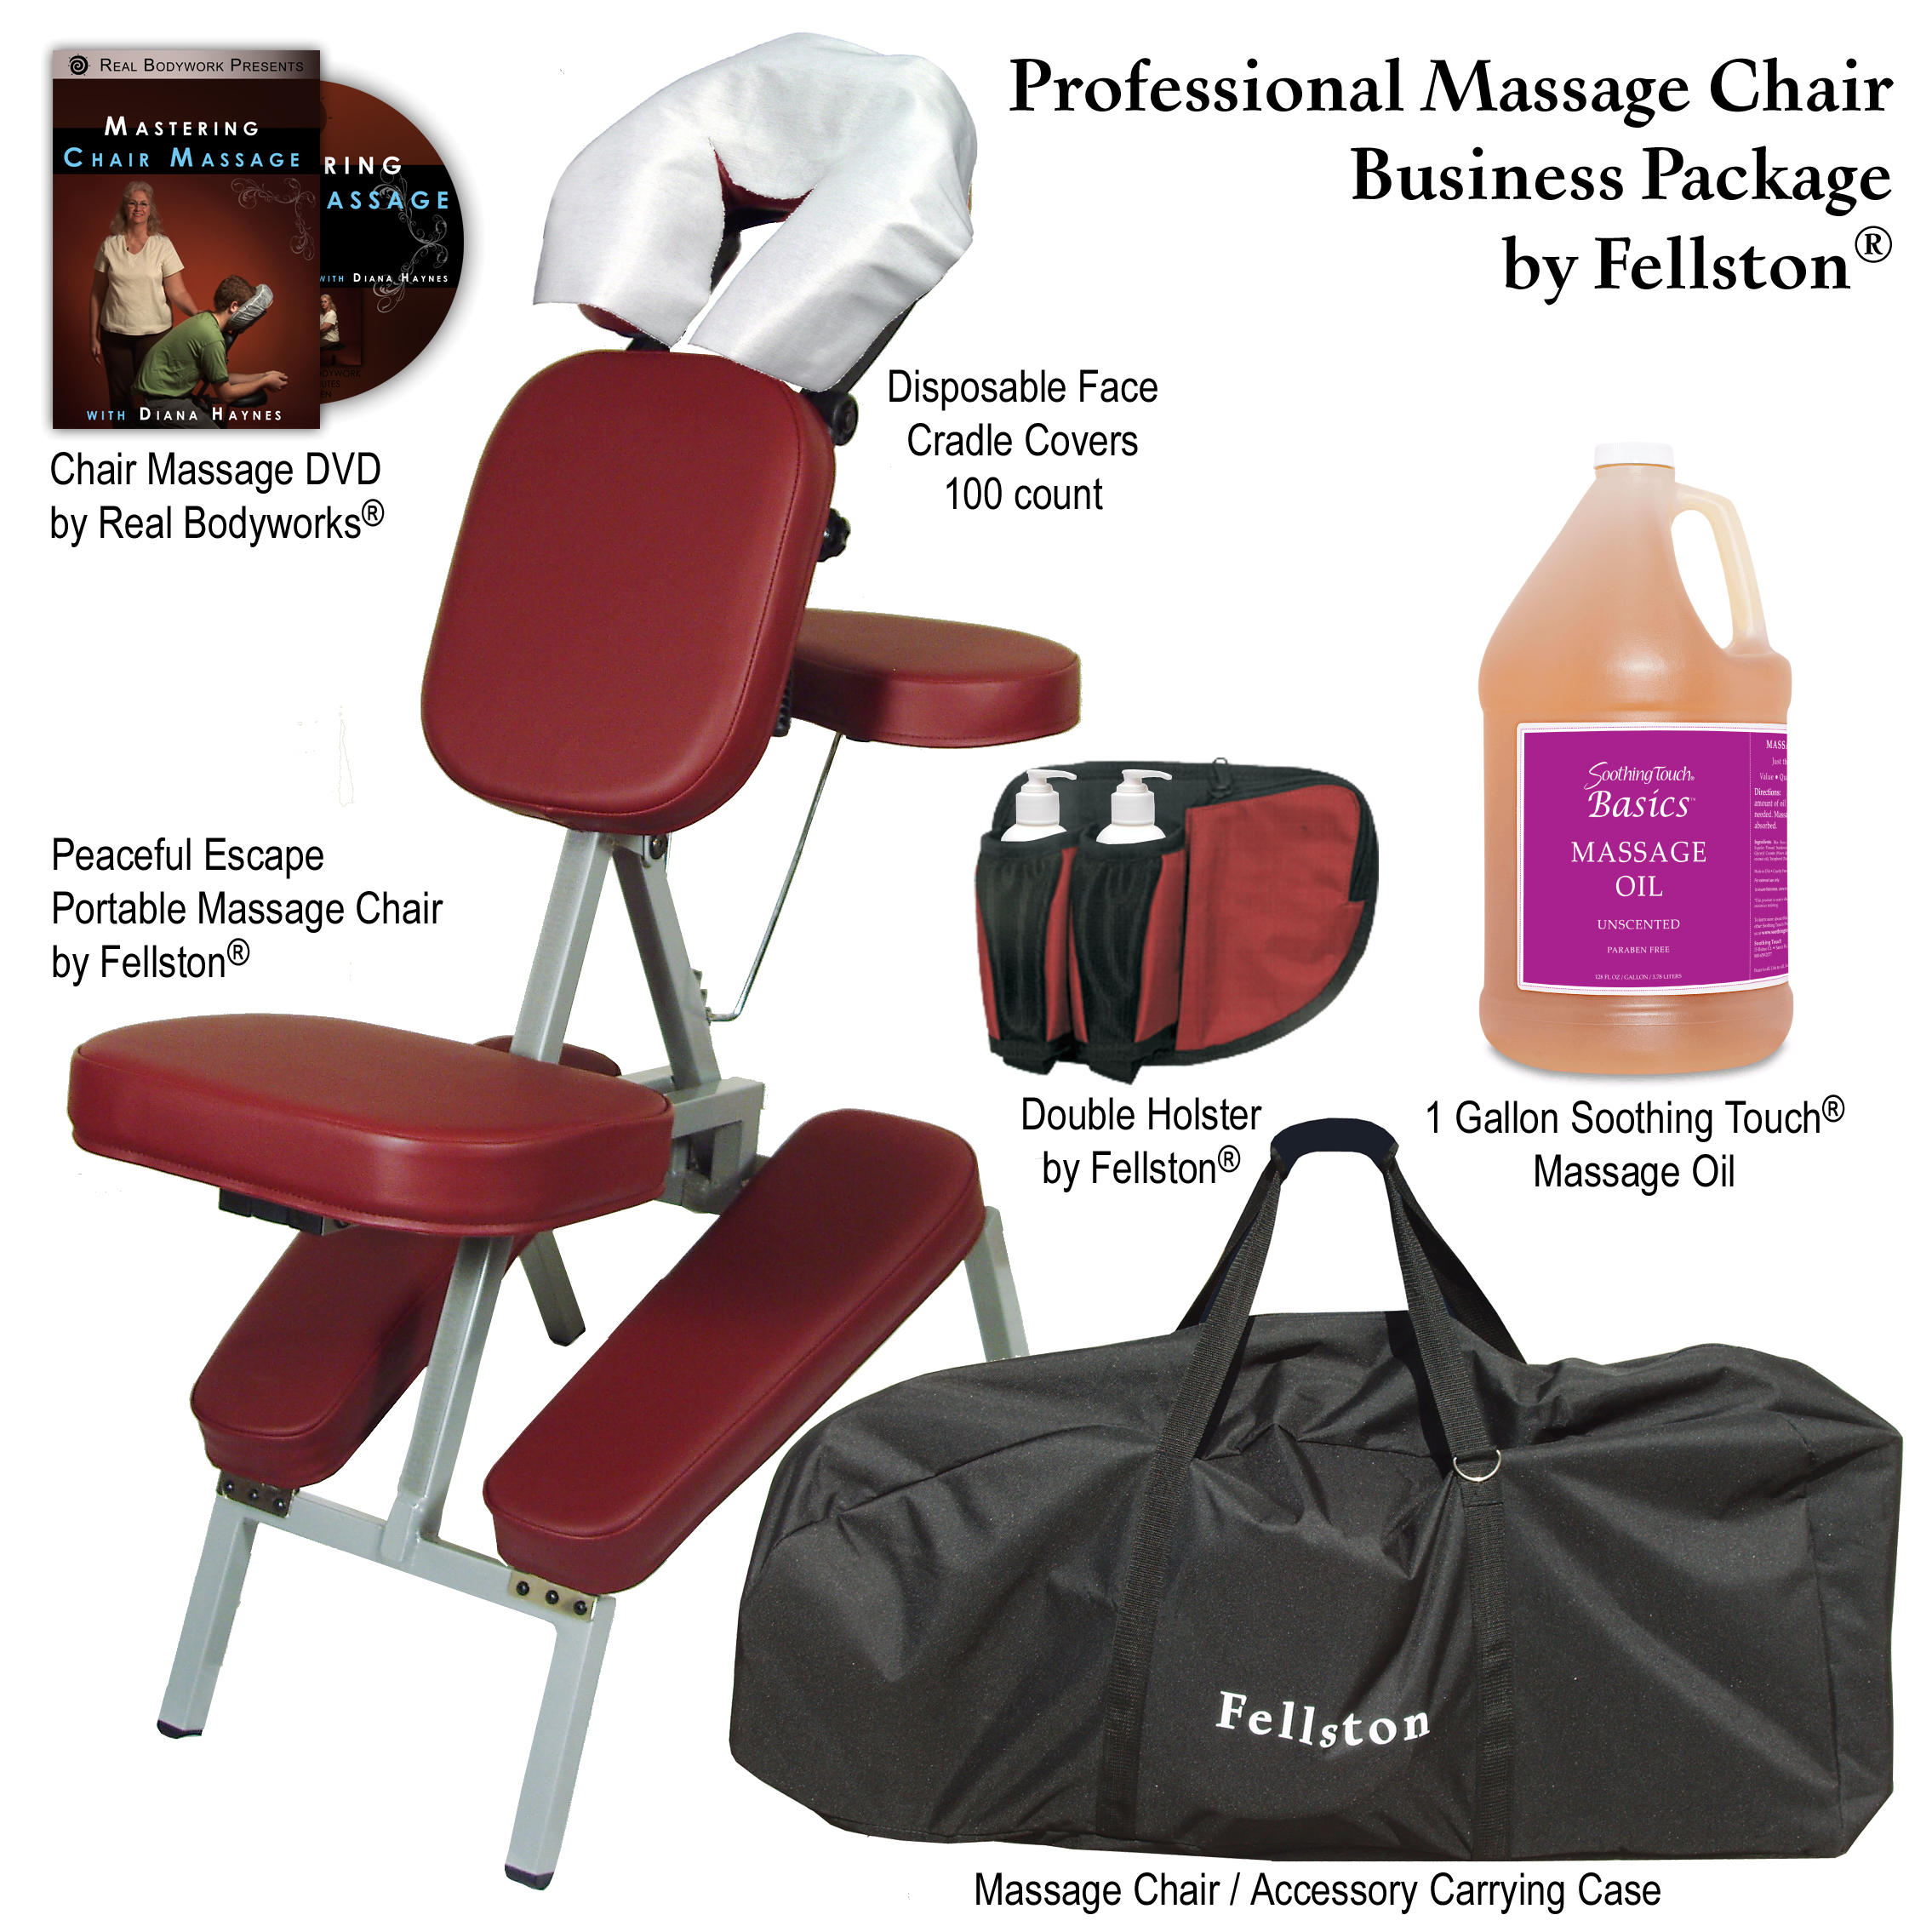 Professional Massage Chair Business Package – Products Directory